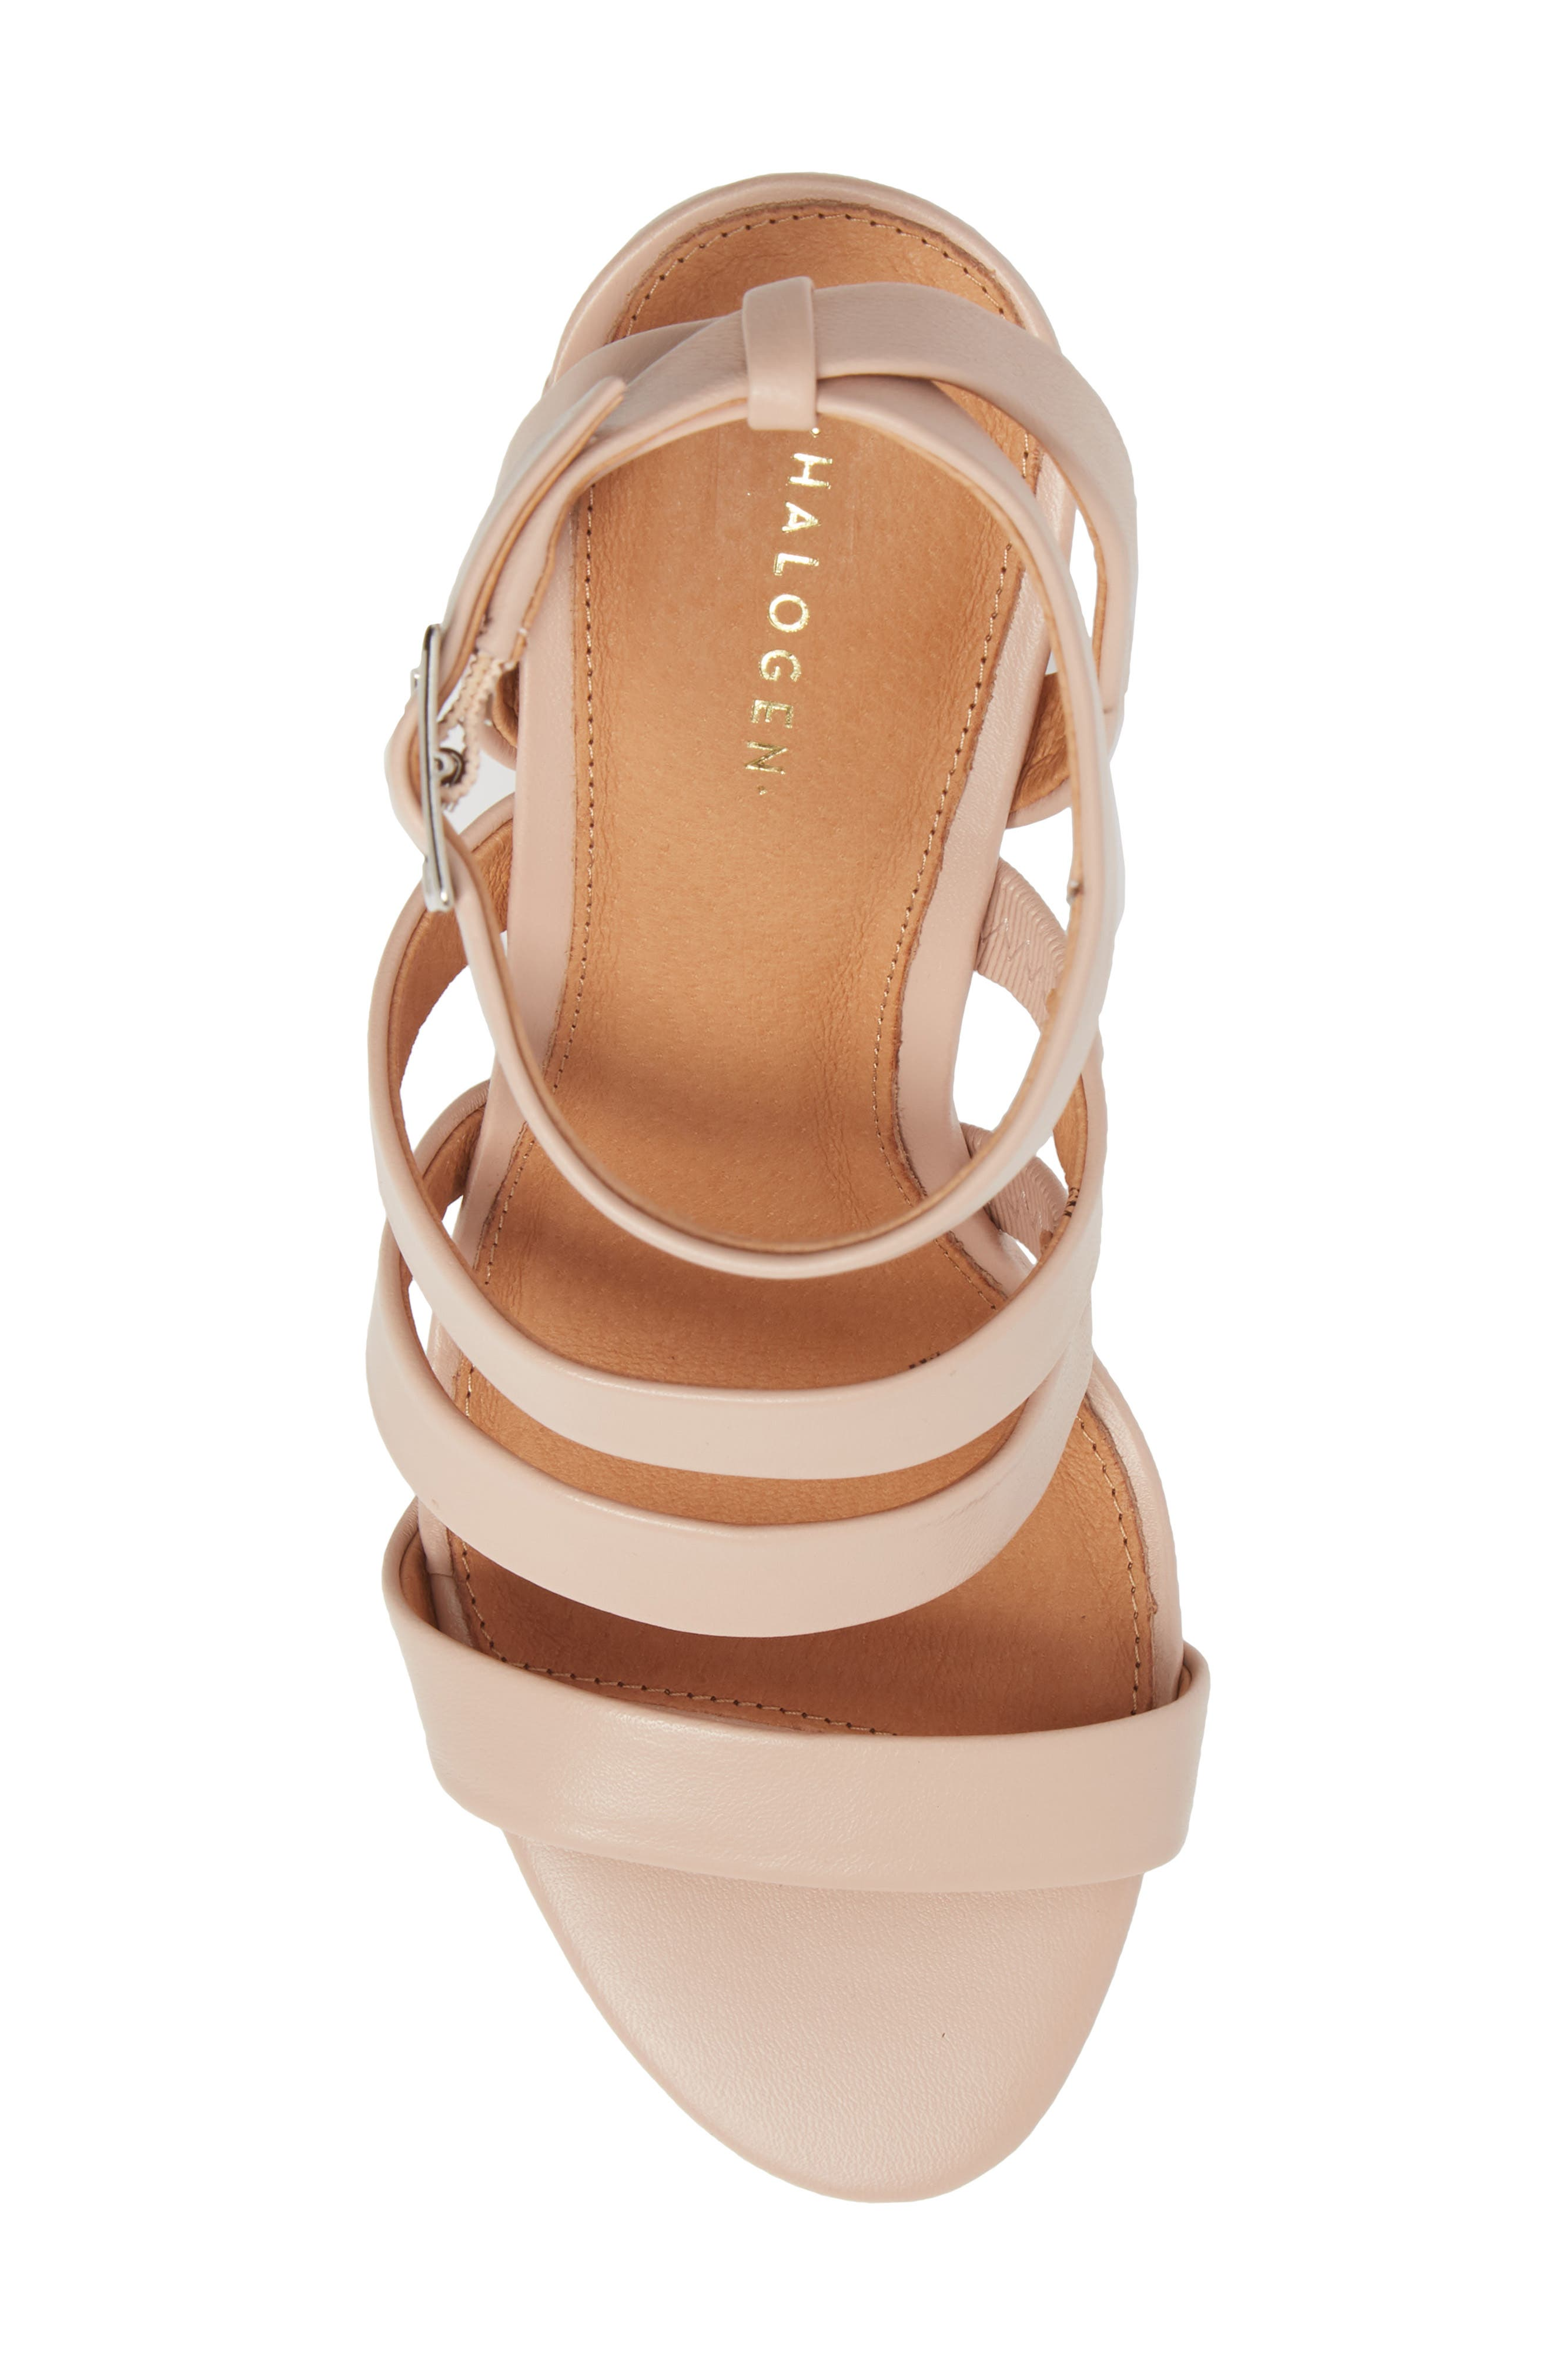 Rocco Sandal,                             Alternate thumbnail 5, color,                             BLUSH LEATHER